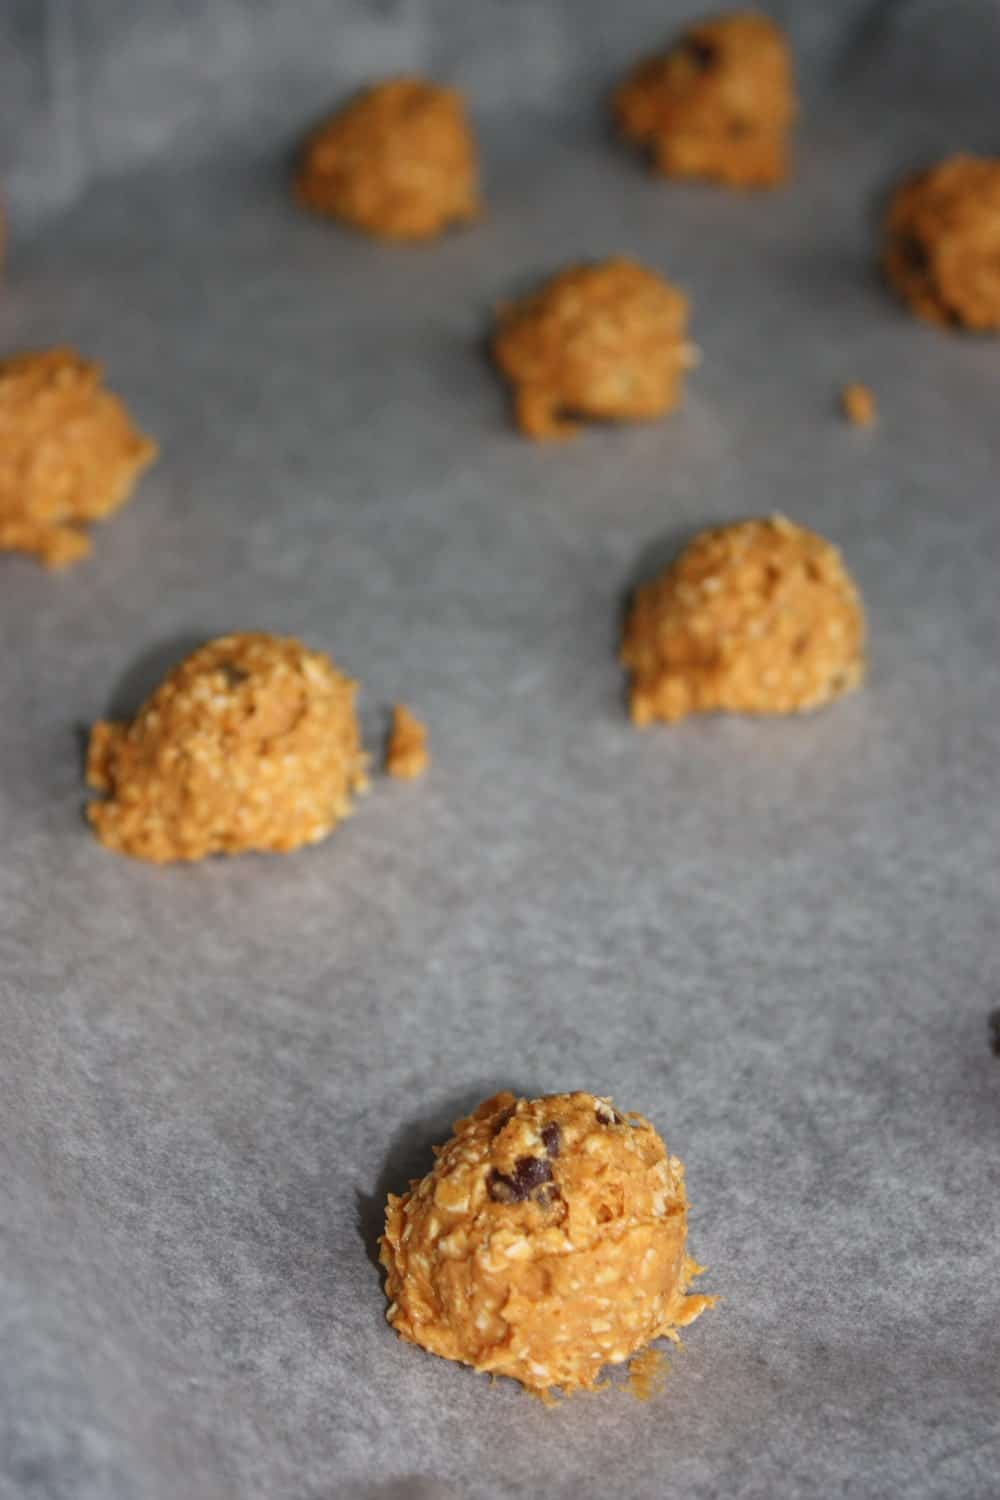 Scooping the cookies onto the parchment paper.